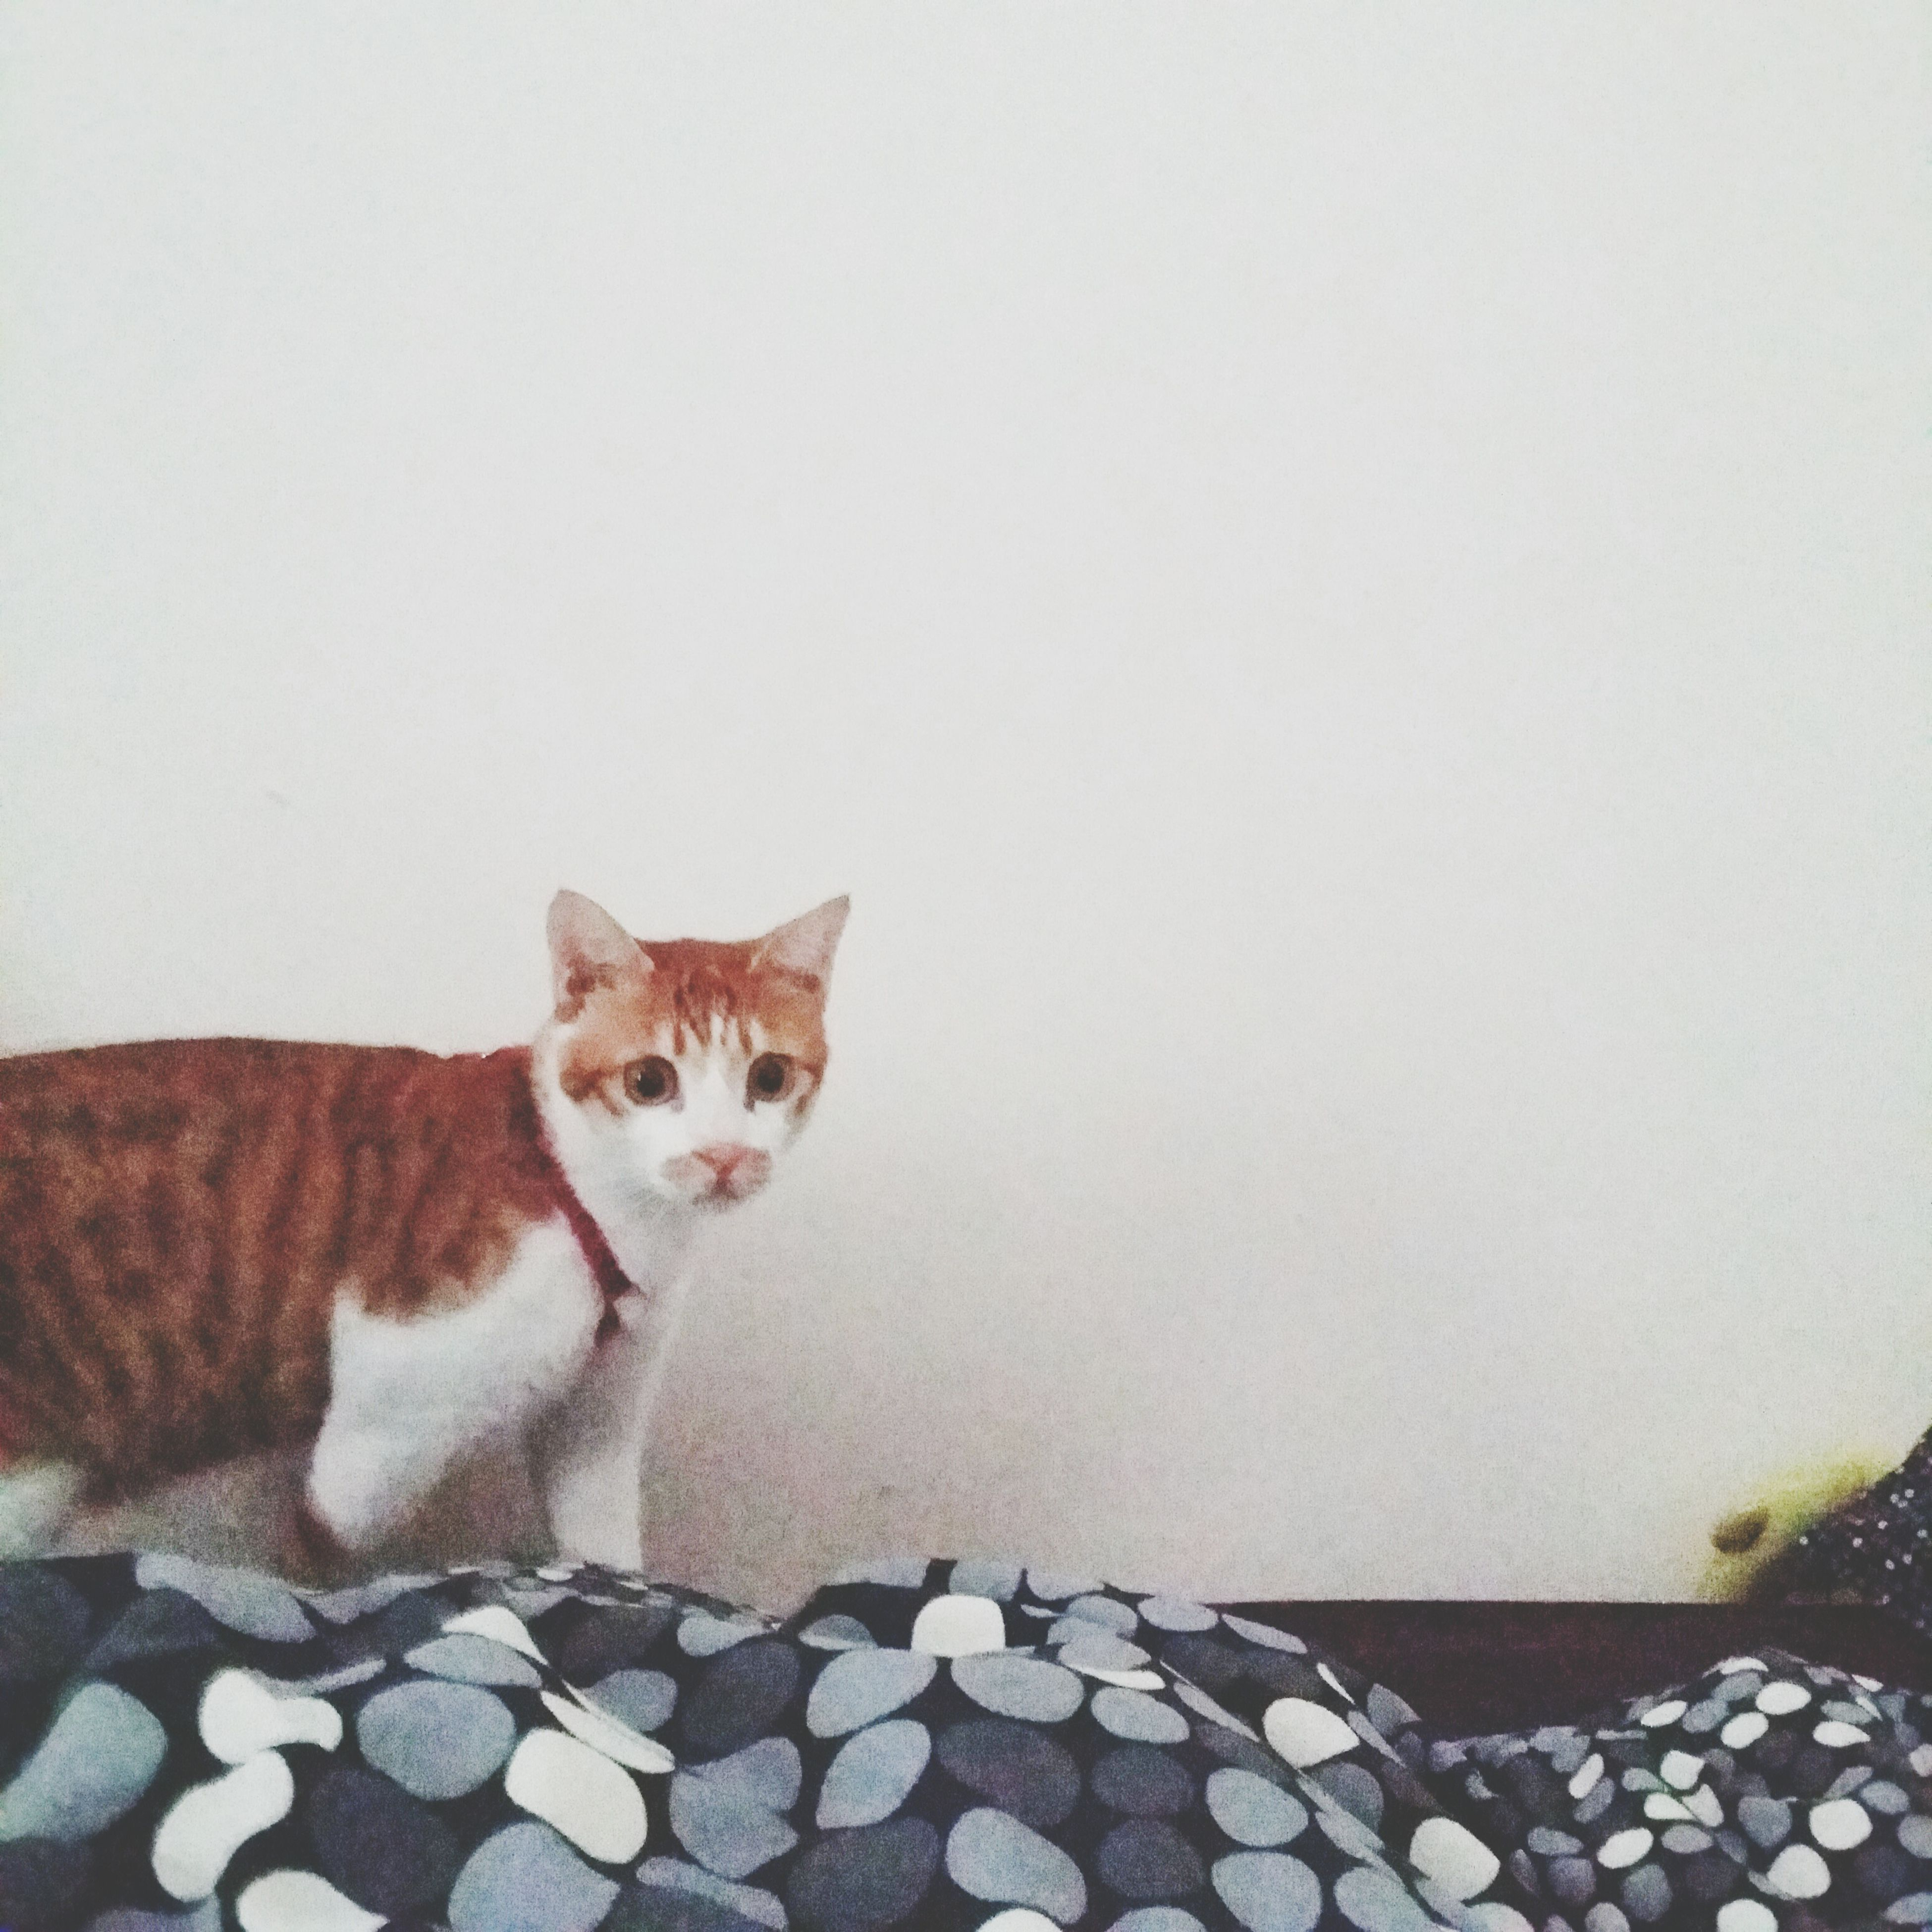 domestic cat, cat, pets, domestic animals, one animal, mammal, feline, animal themes, portrait, looking at camera, whisker, copy space, relaxation, wall - building feature, sitting, alertness, full length, no people, day